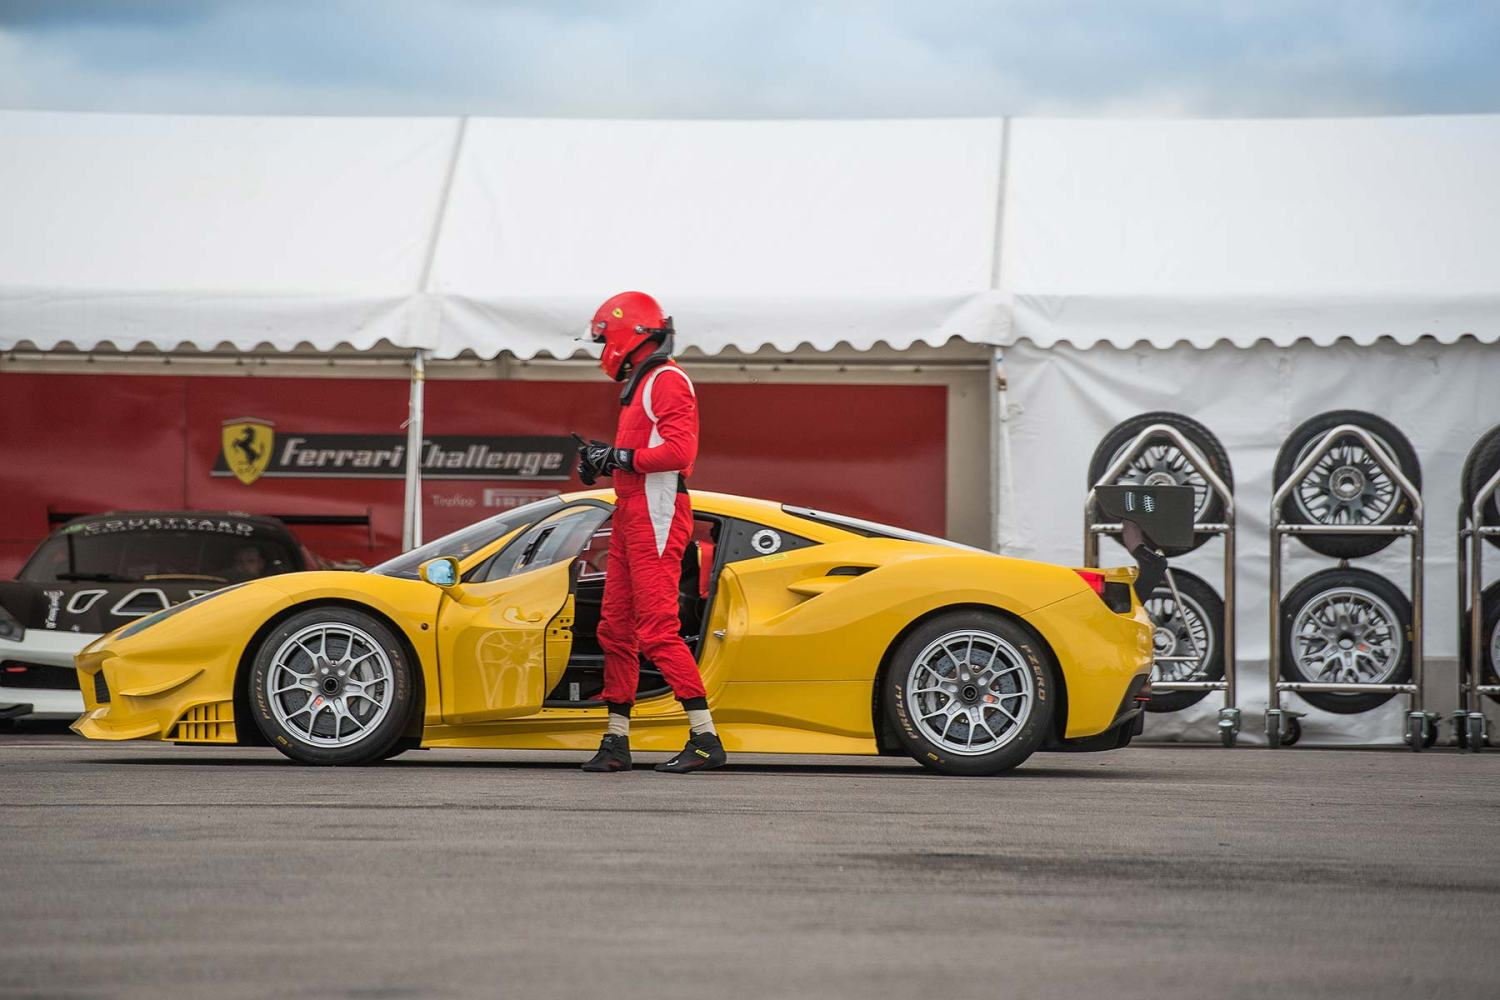 Ferrari Challenge UK race series